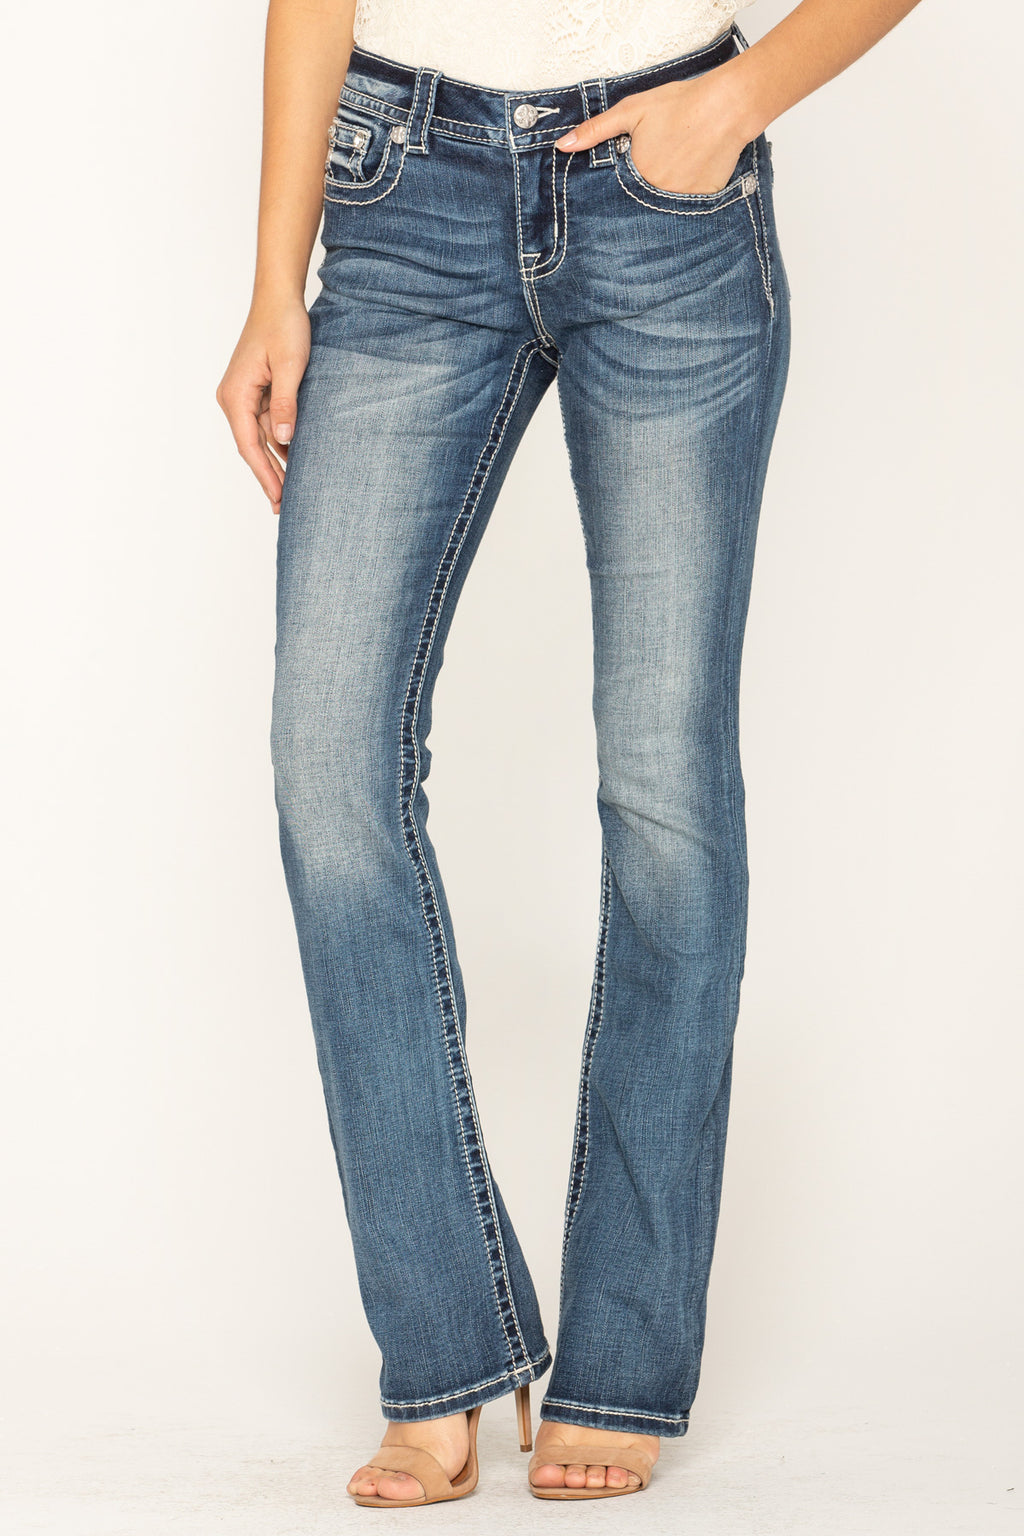 82dd4b66185 IN THE TROPICS SLIM BOOTCUT JEANS - front